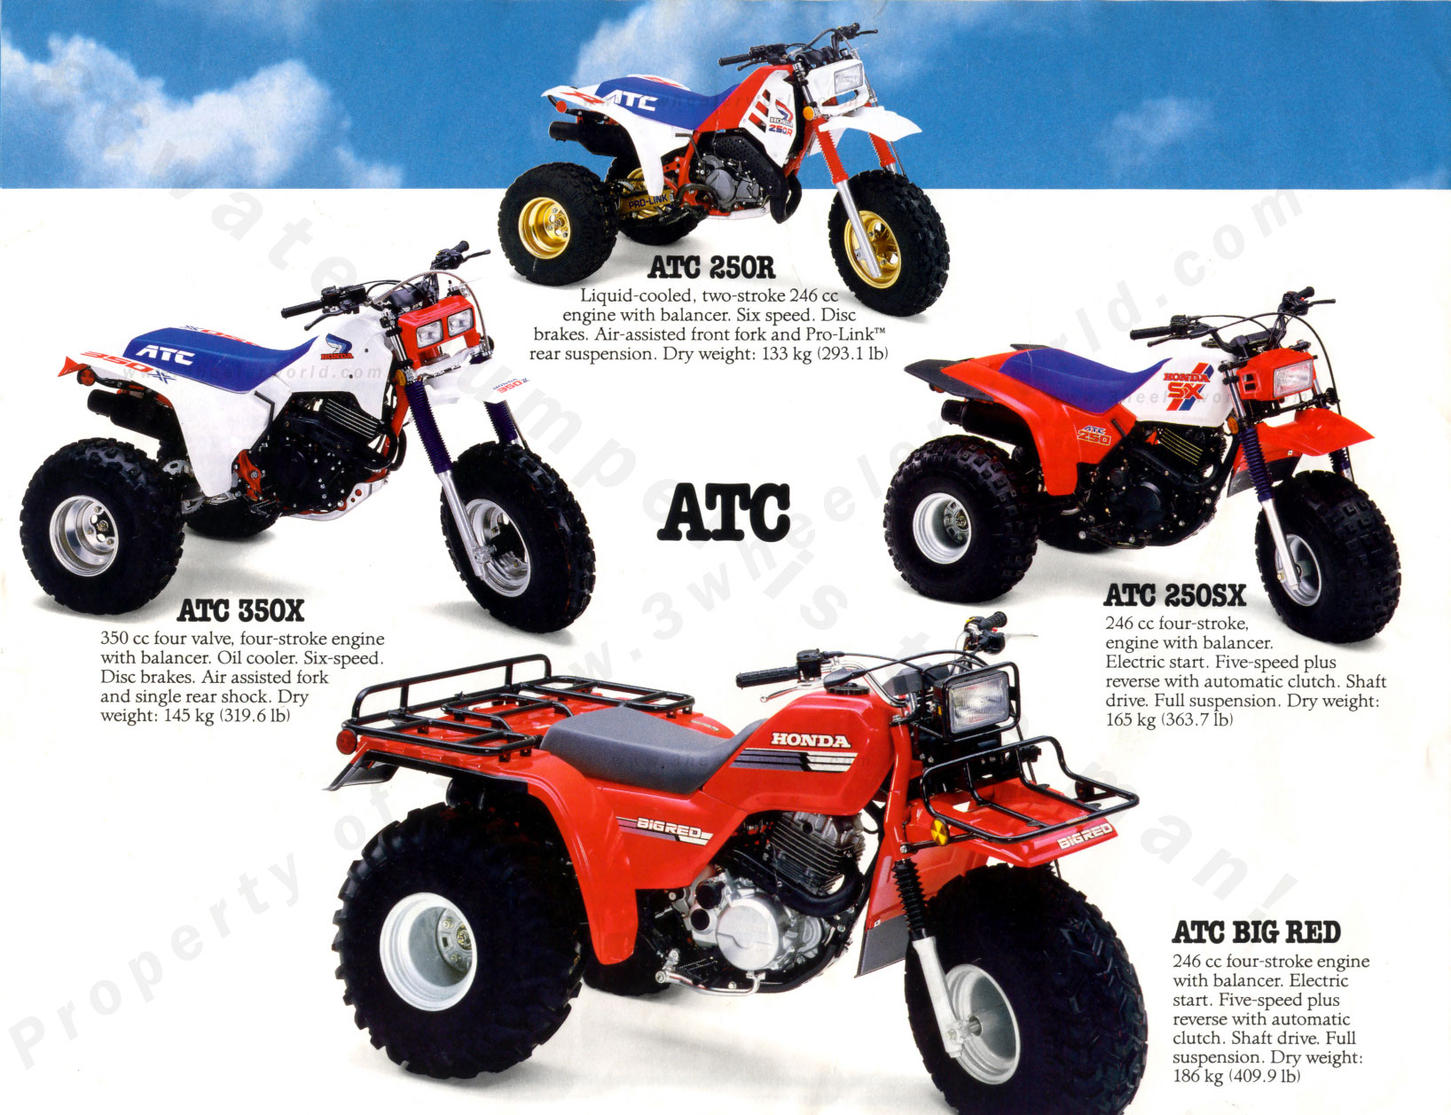 This brochure, originally from Canada shows the 1987 year model machines. Including the ever elusive '87 year model ATC250R, and ATC350X.